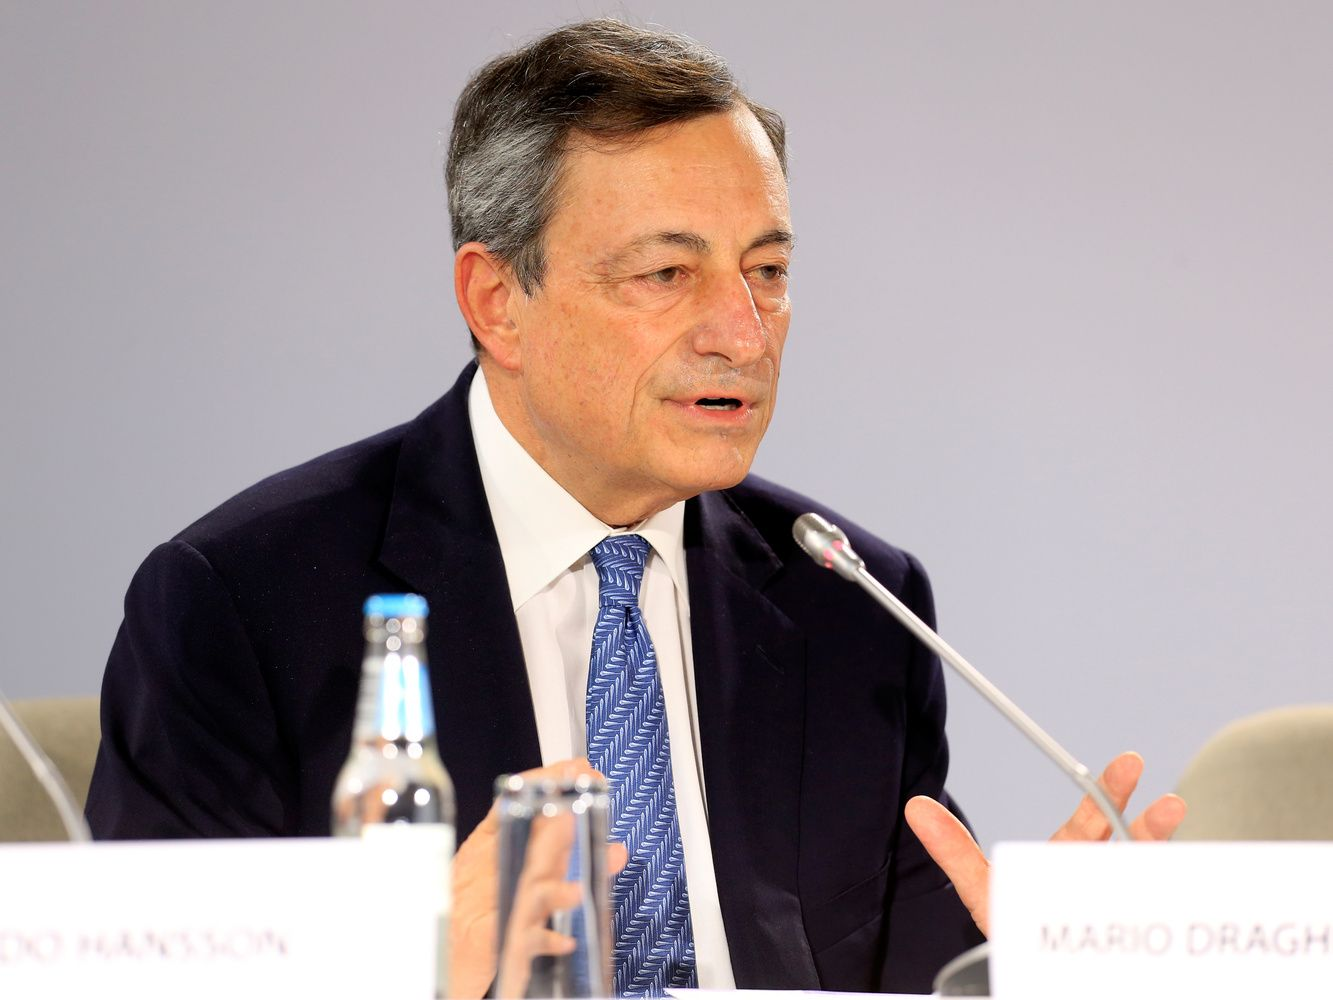 Draghi Sees Room for Paring Stimulus Without Tightening Policy